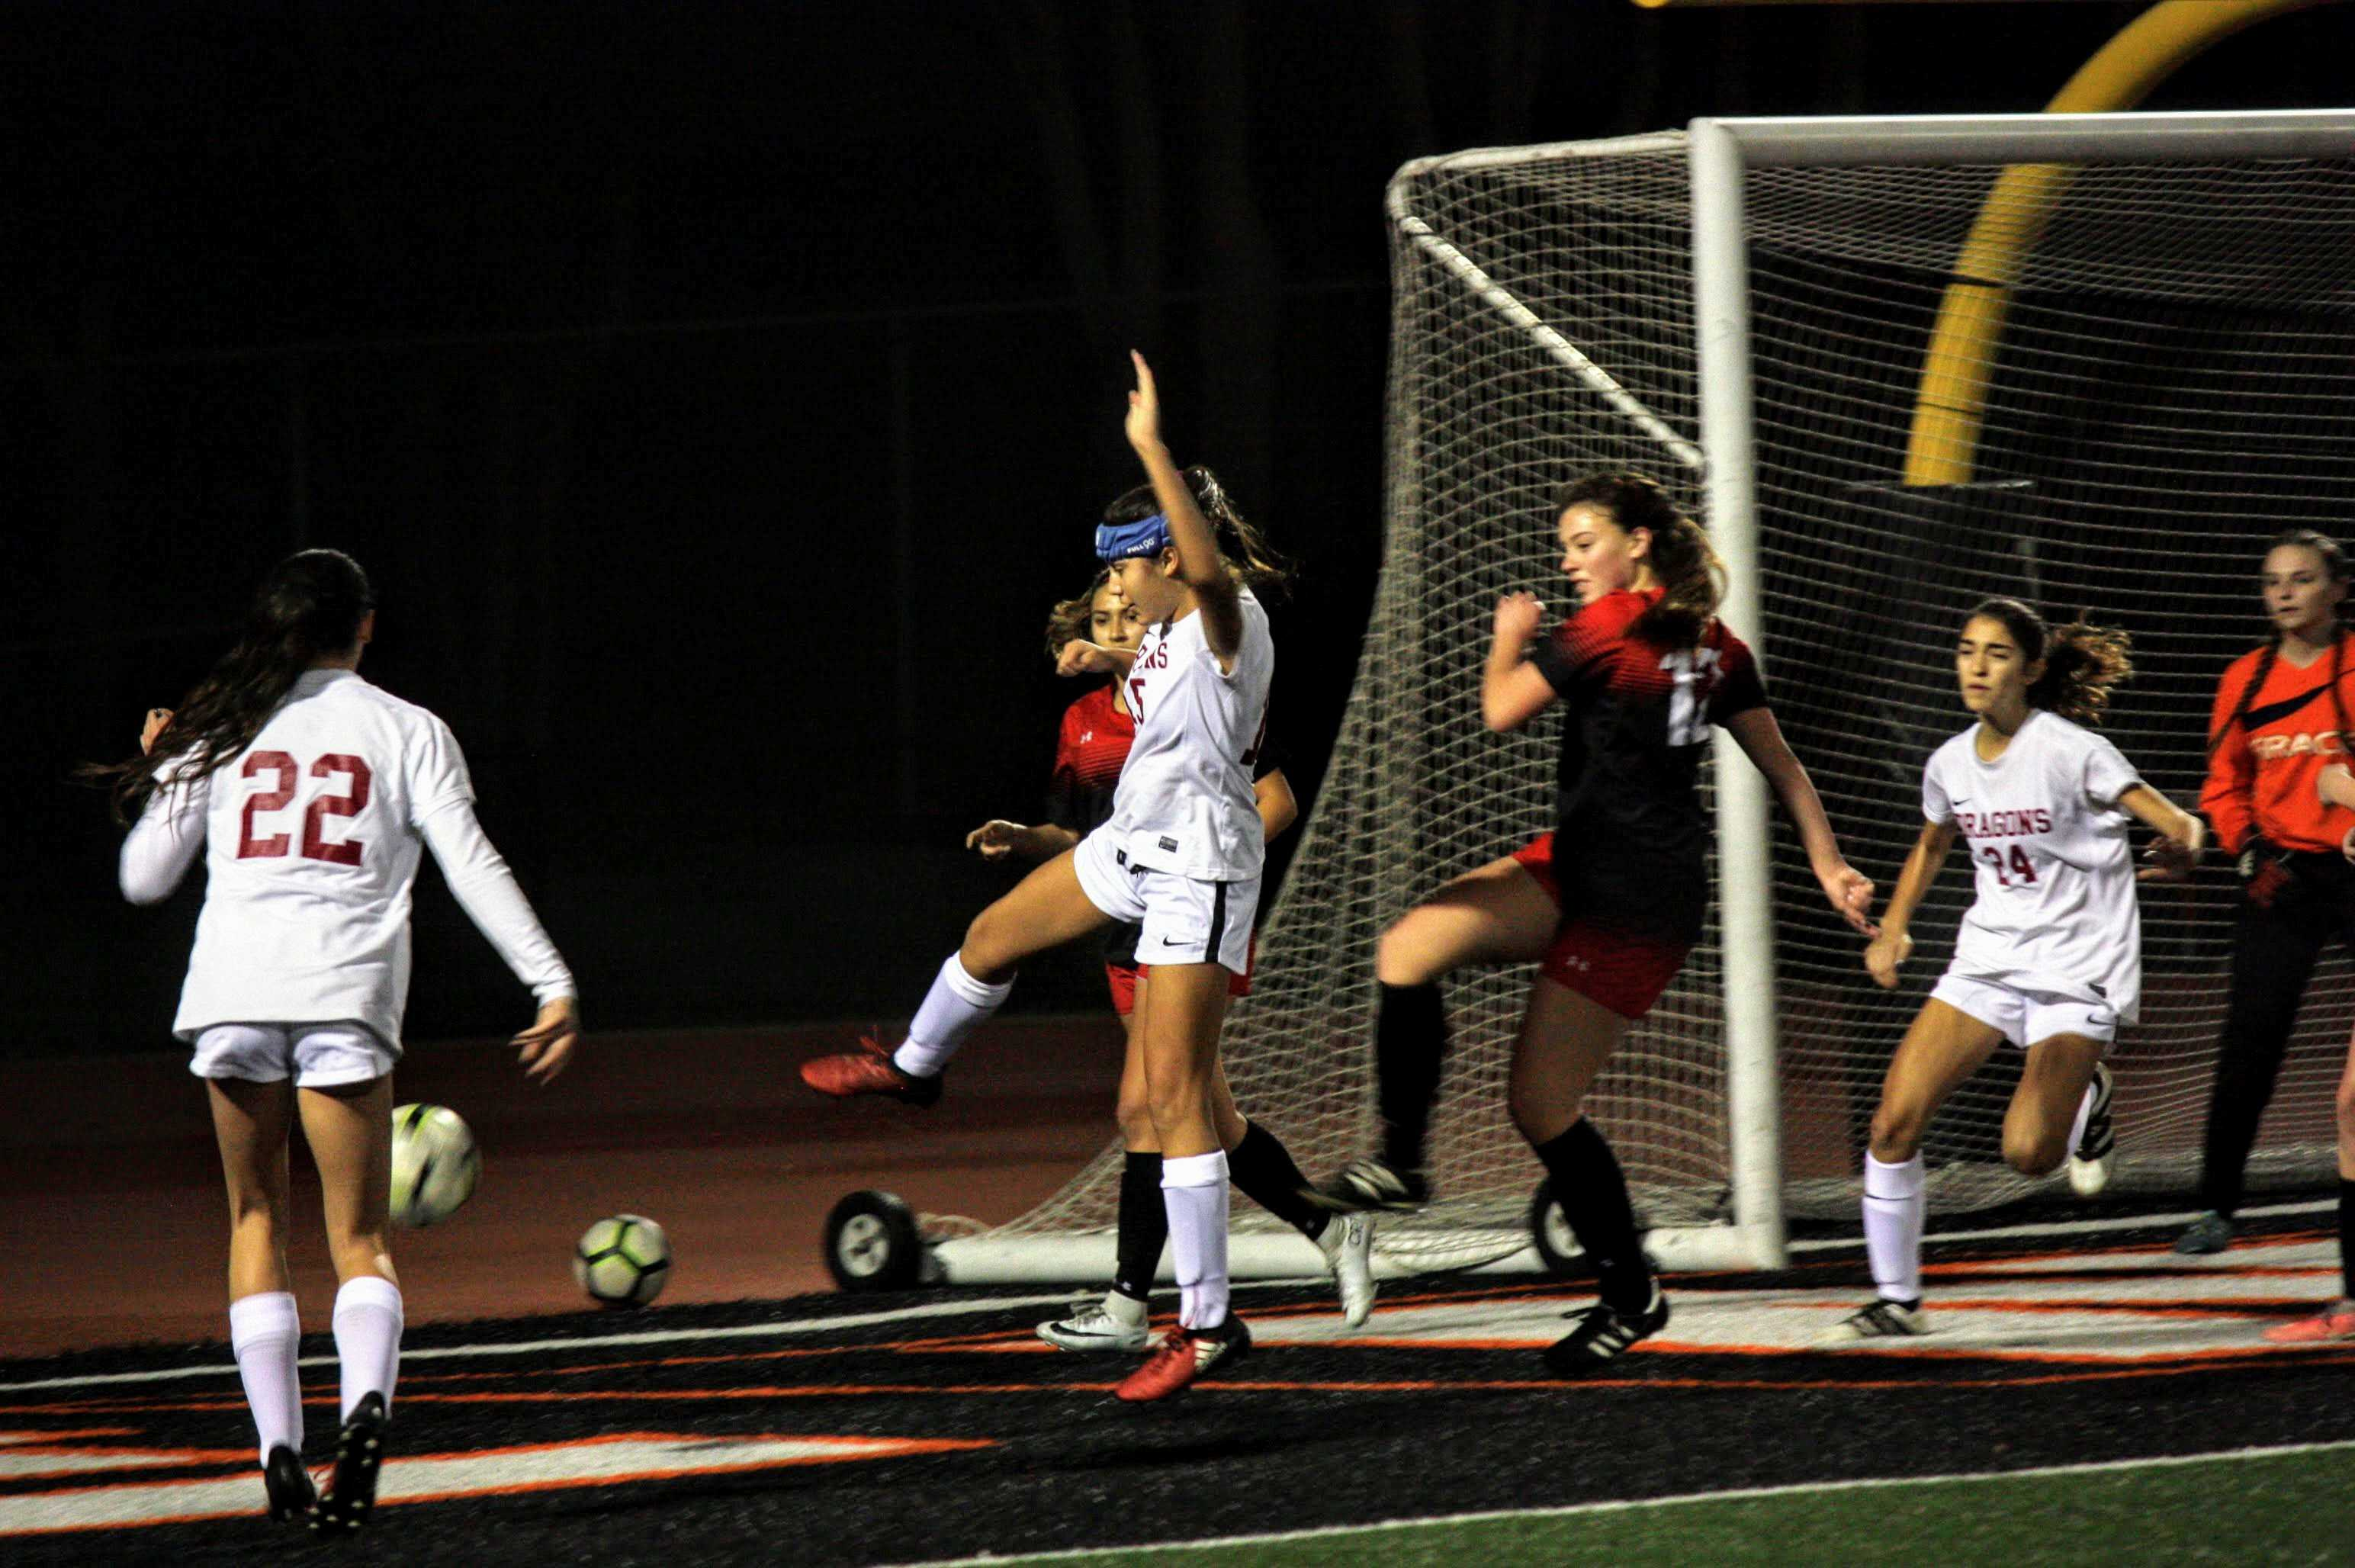 Girls' soccer beats Grace Brethren in first league game, 2-1